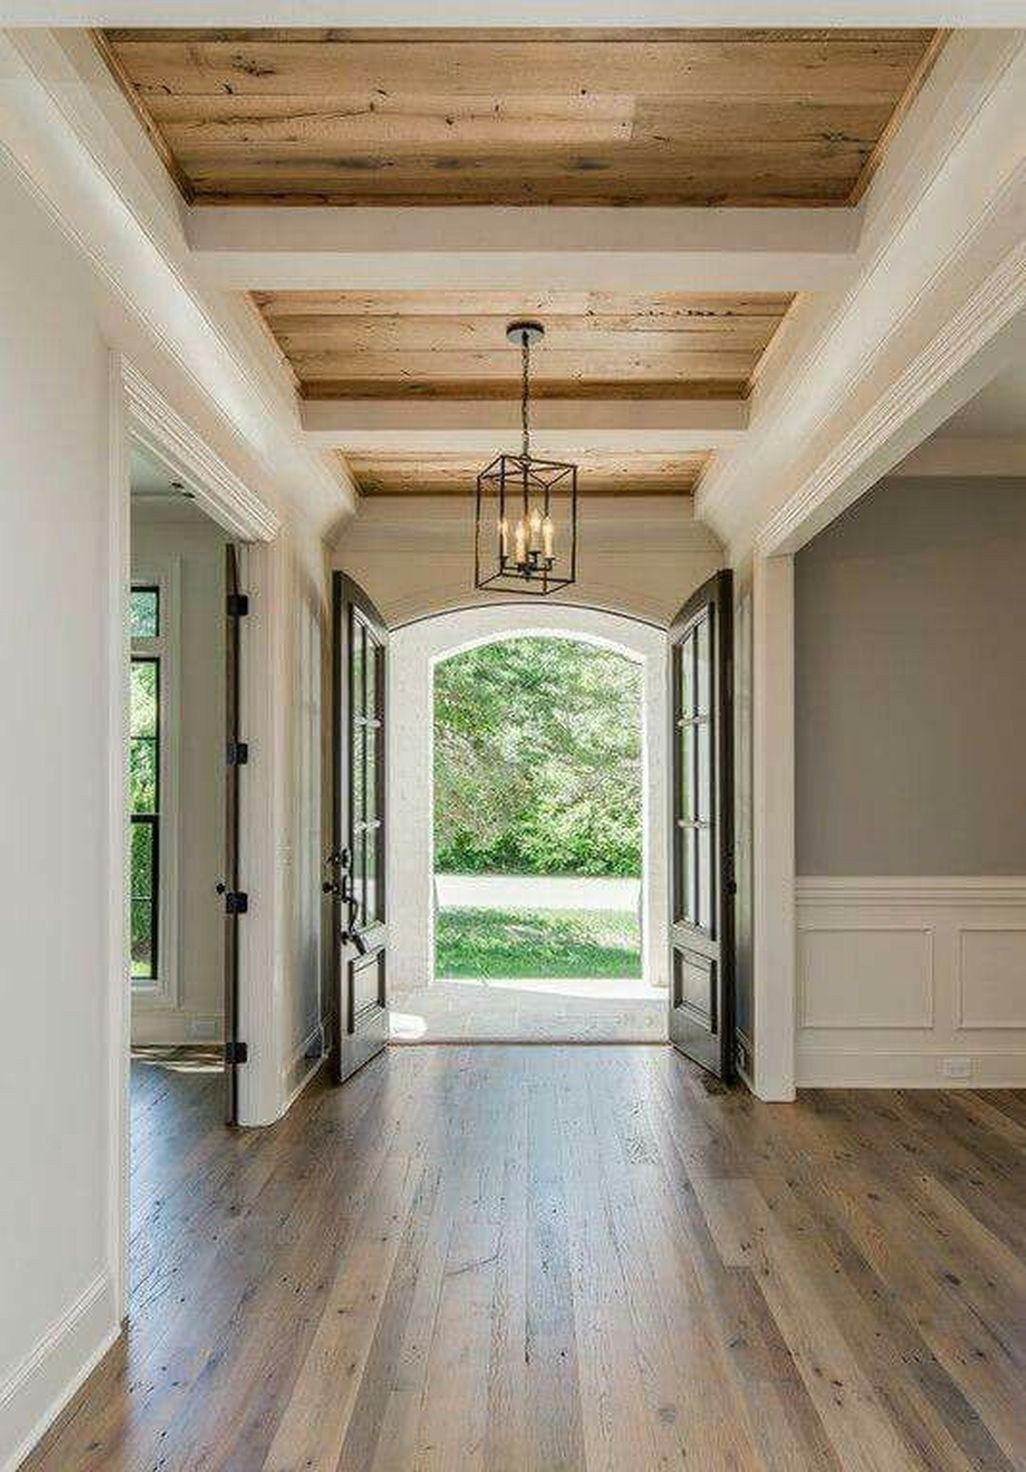 Cool Modern Simple Wooden House Designs To Be Inspired By: Farmhouse Flooring, House Design, Rustic Ceiling